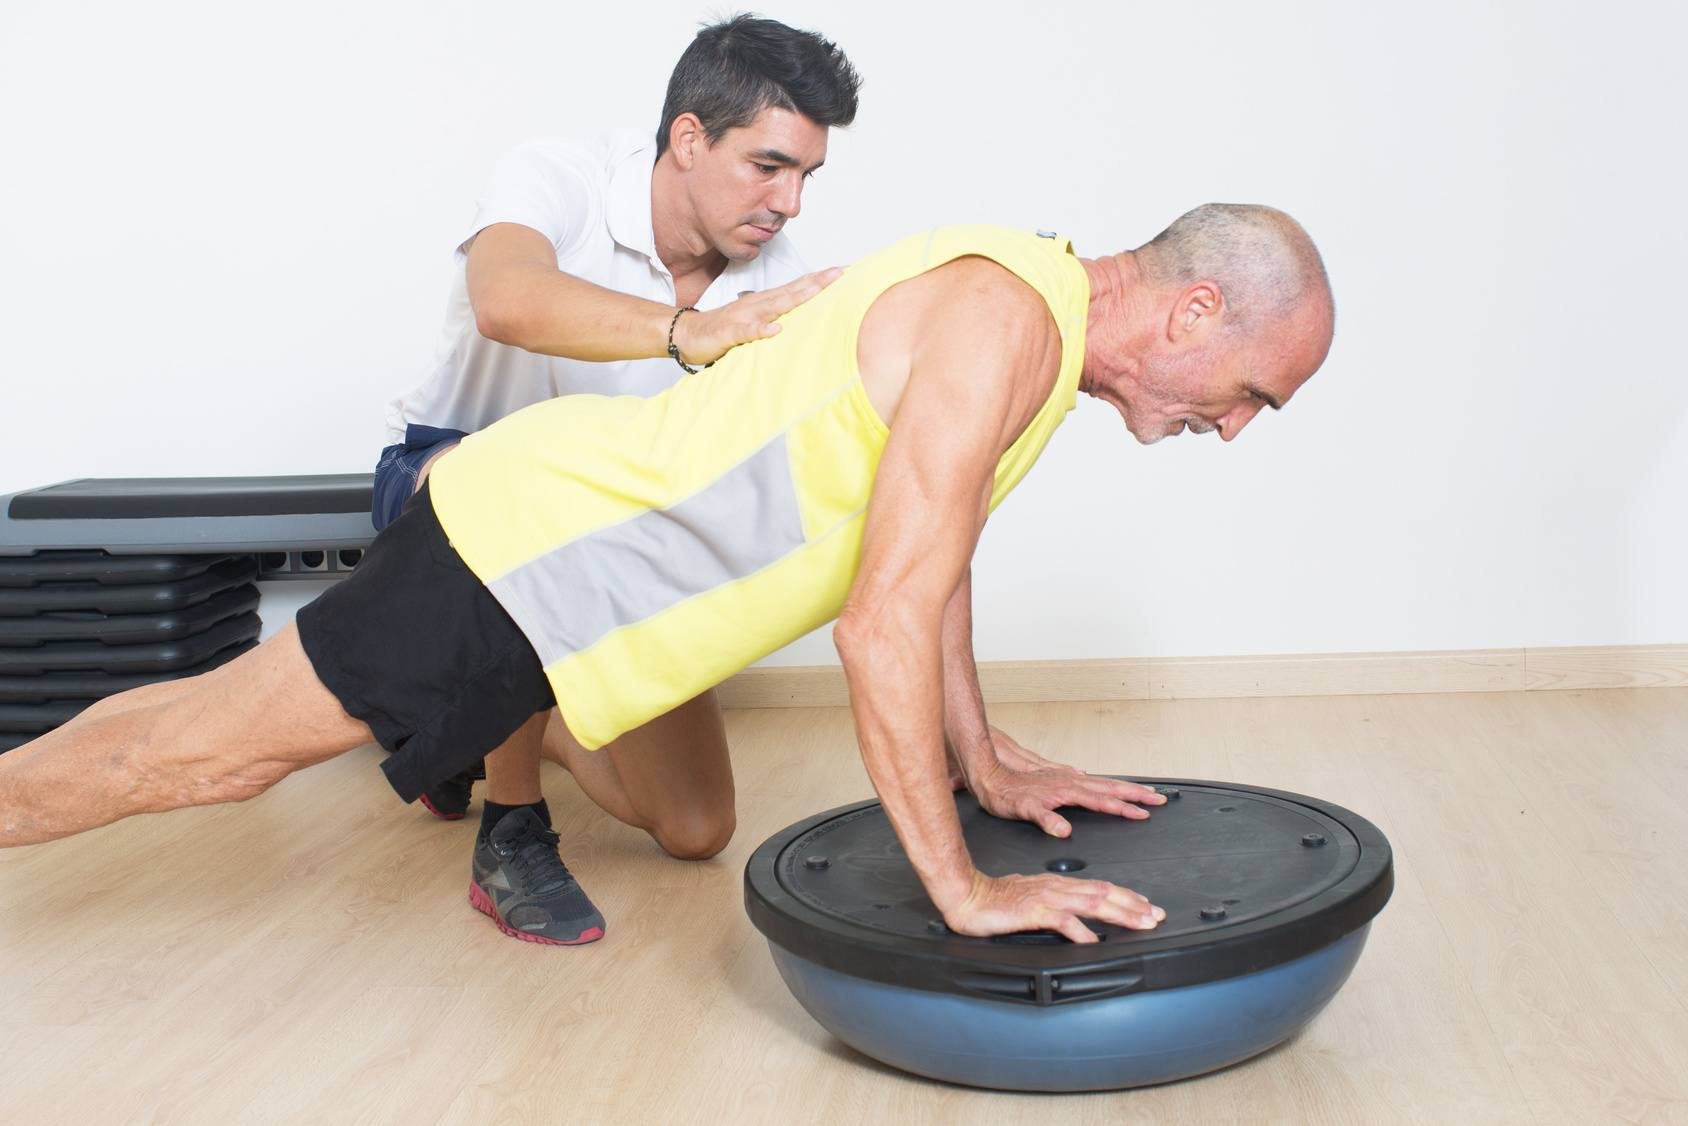 Are you looking for an exercise physiotherapist to improve core and balance for the elderly?